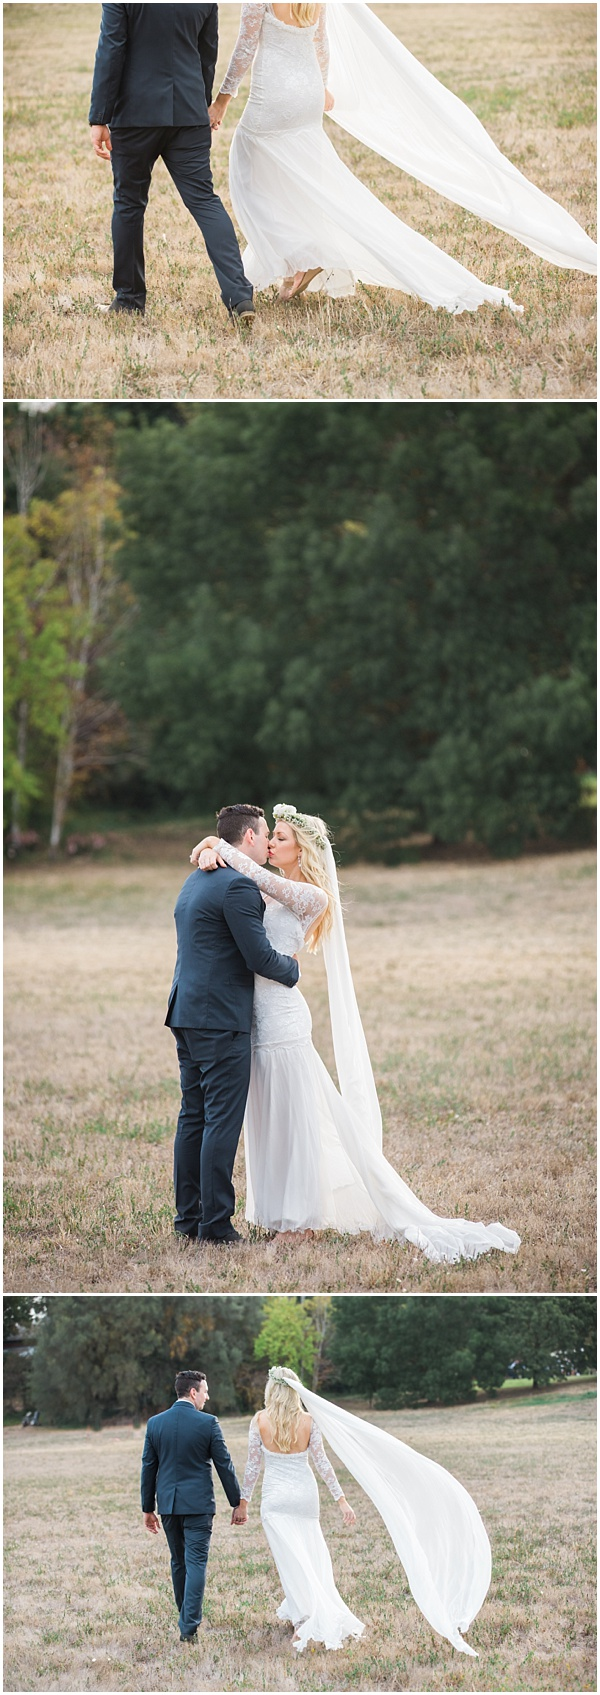 Bendigo Echuca Macedon Elegant Country Wedding Photography_0021